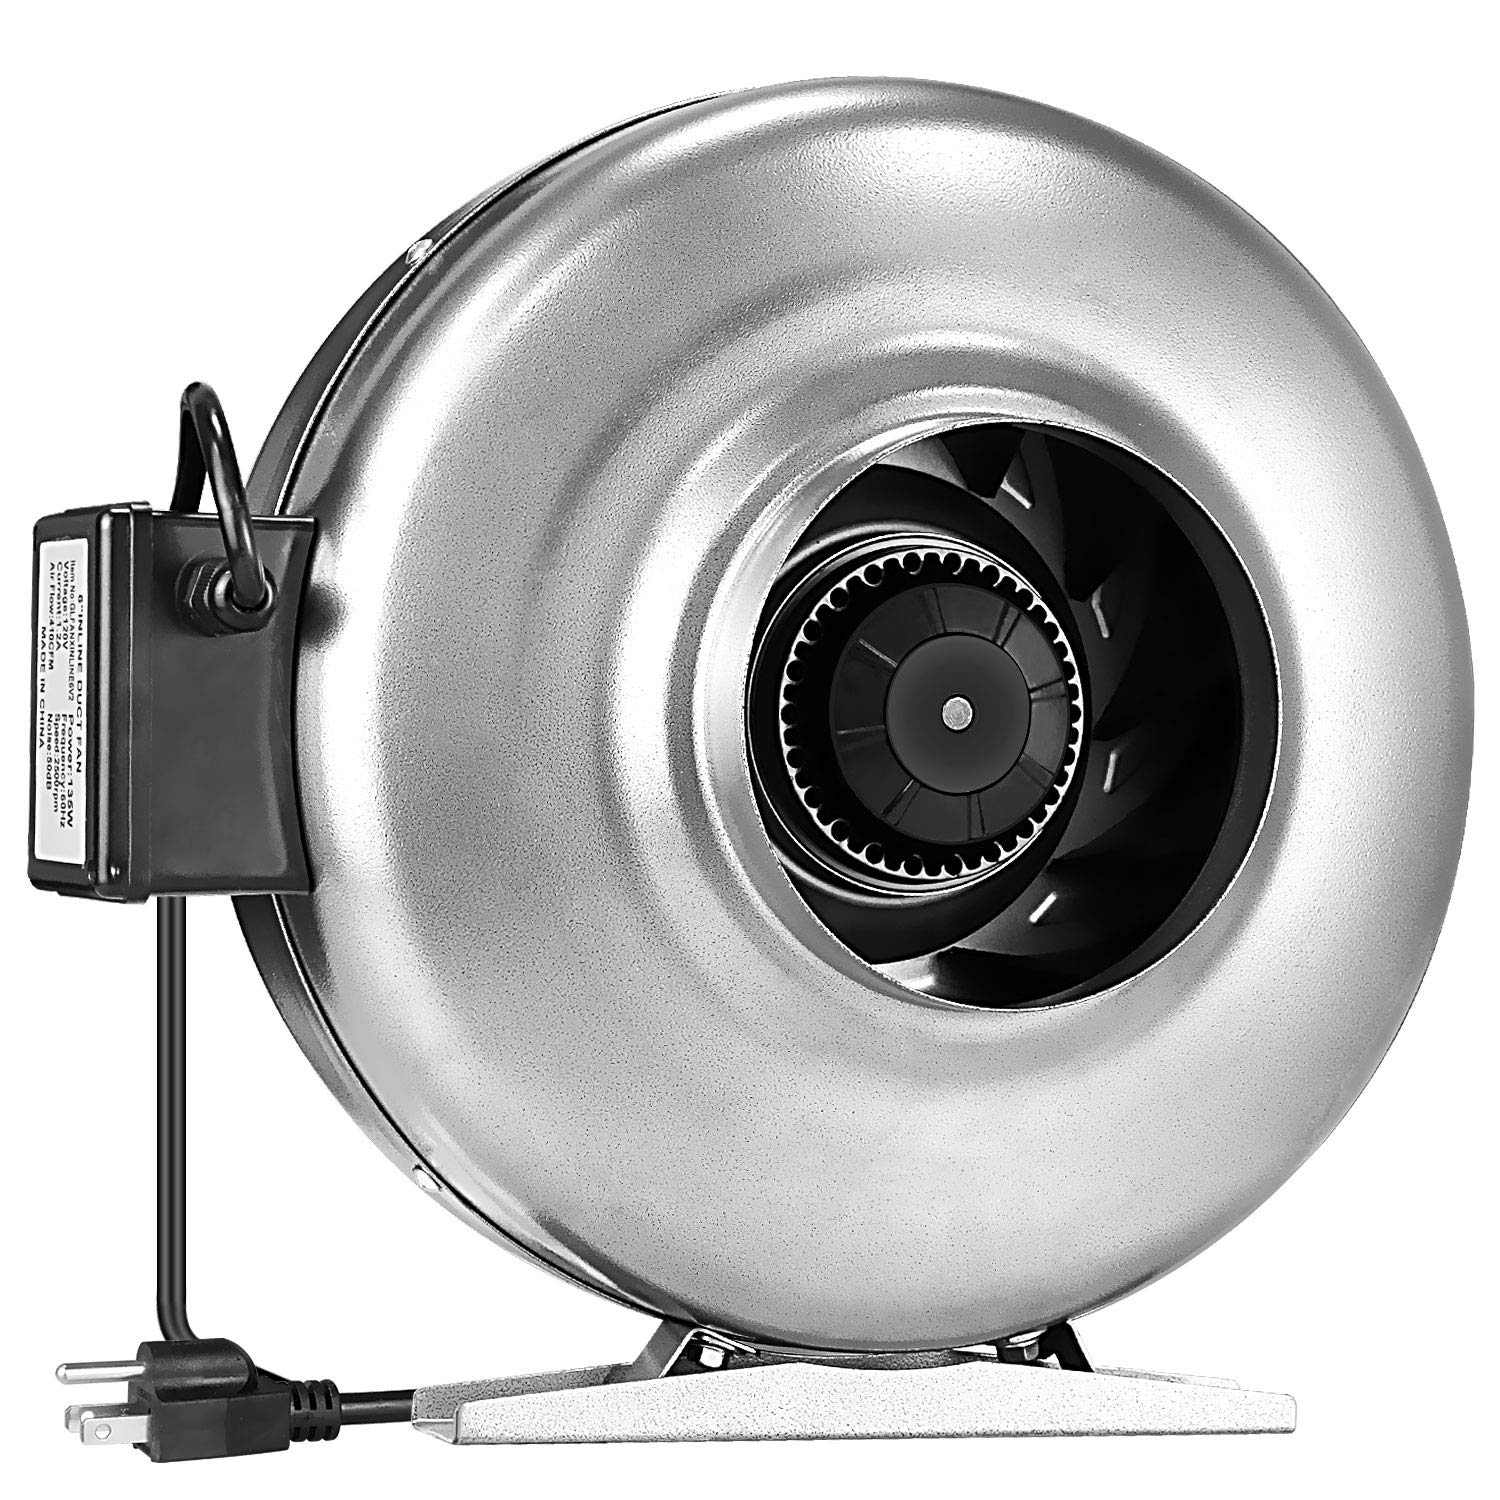 iPower 6'' 410 CFM Inline Duct Fan Ventilation HVAC Vent Blower Fan For Grow Tent by iPower